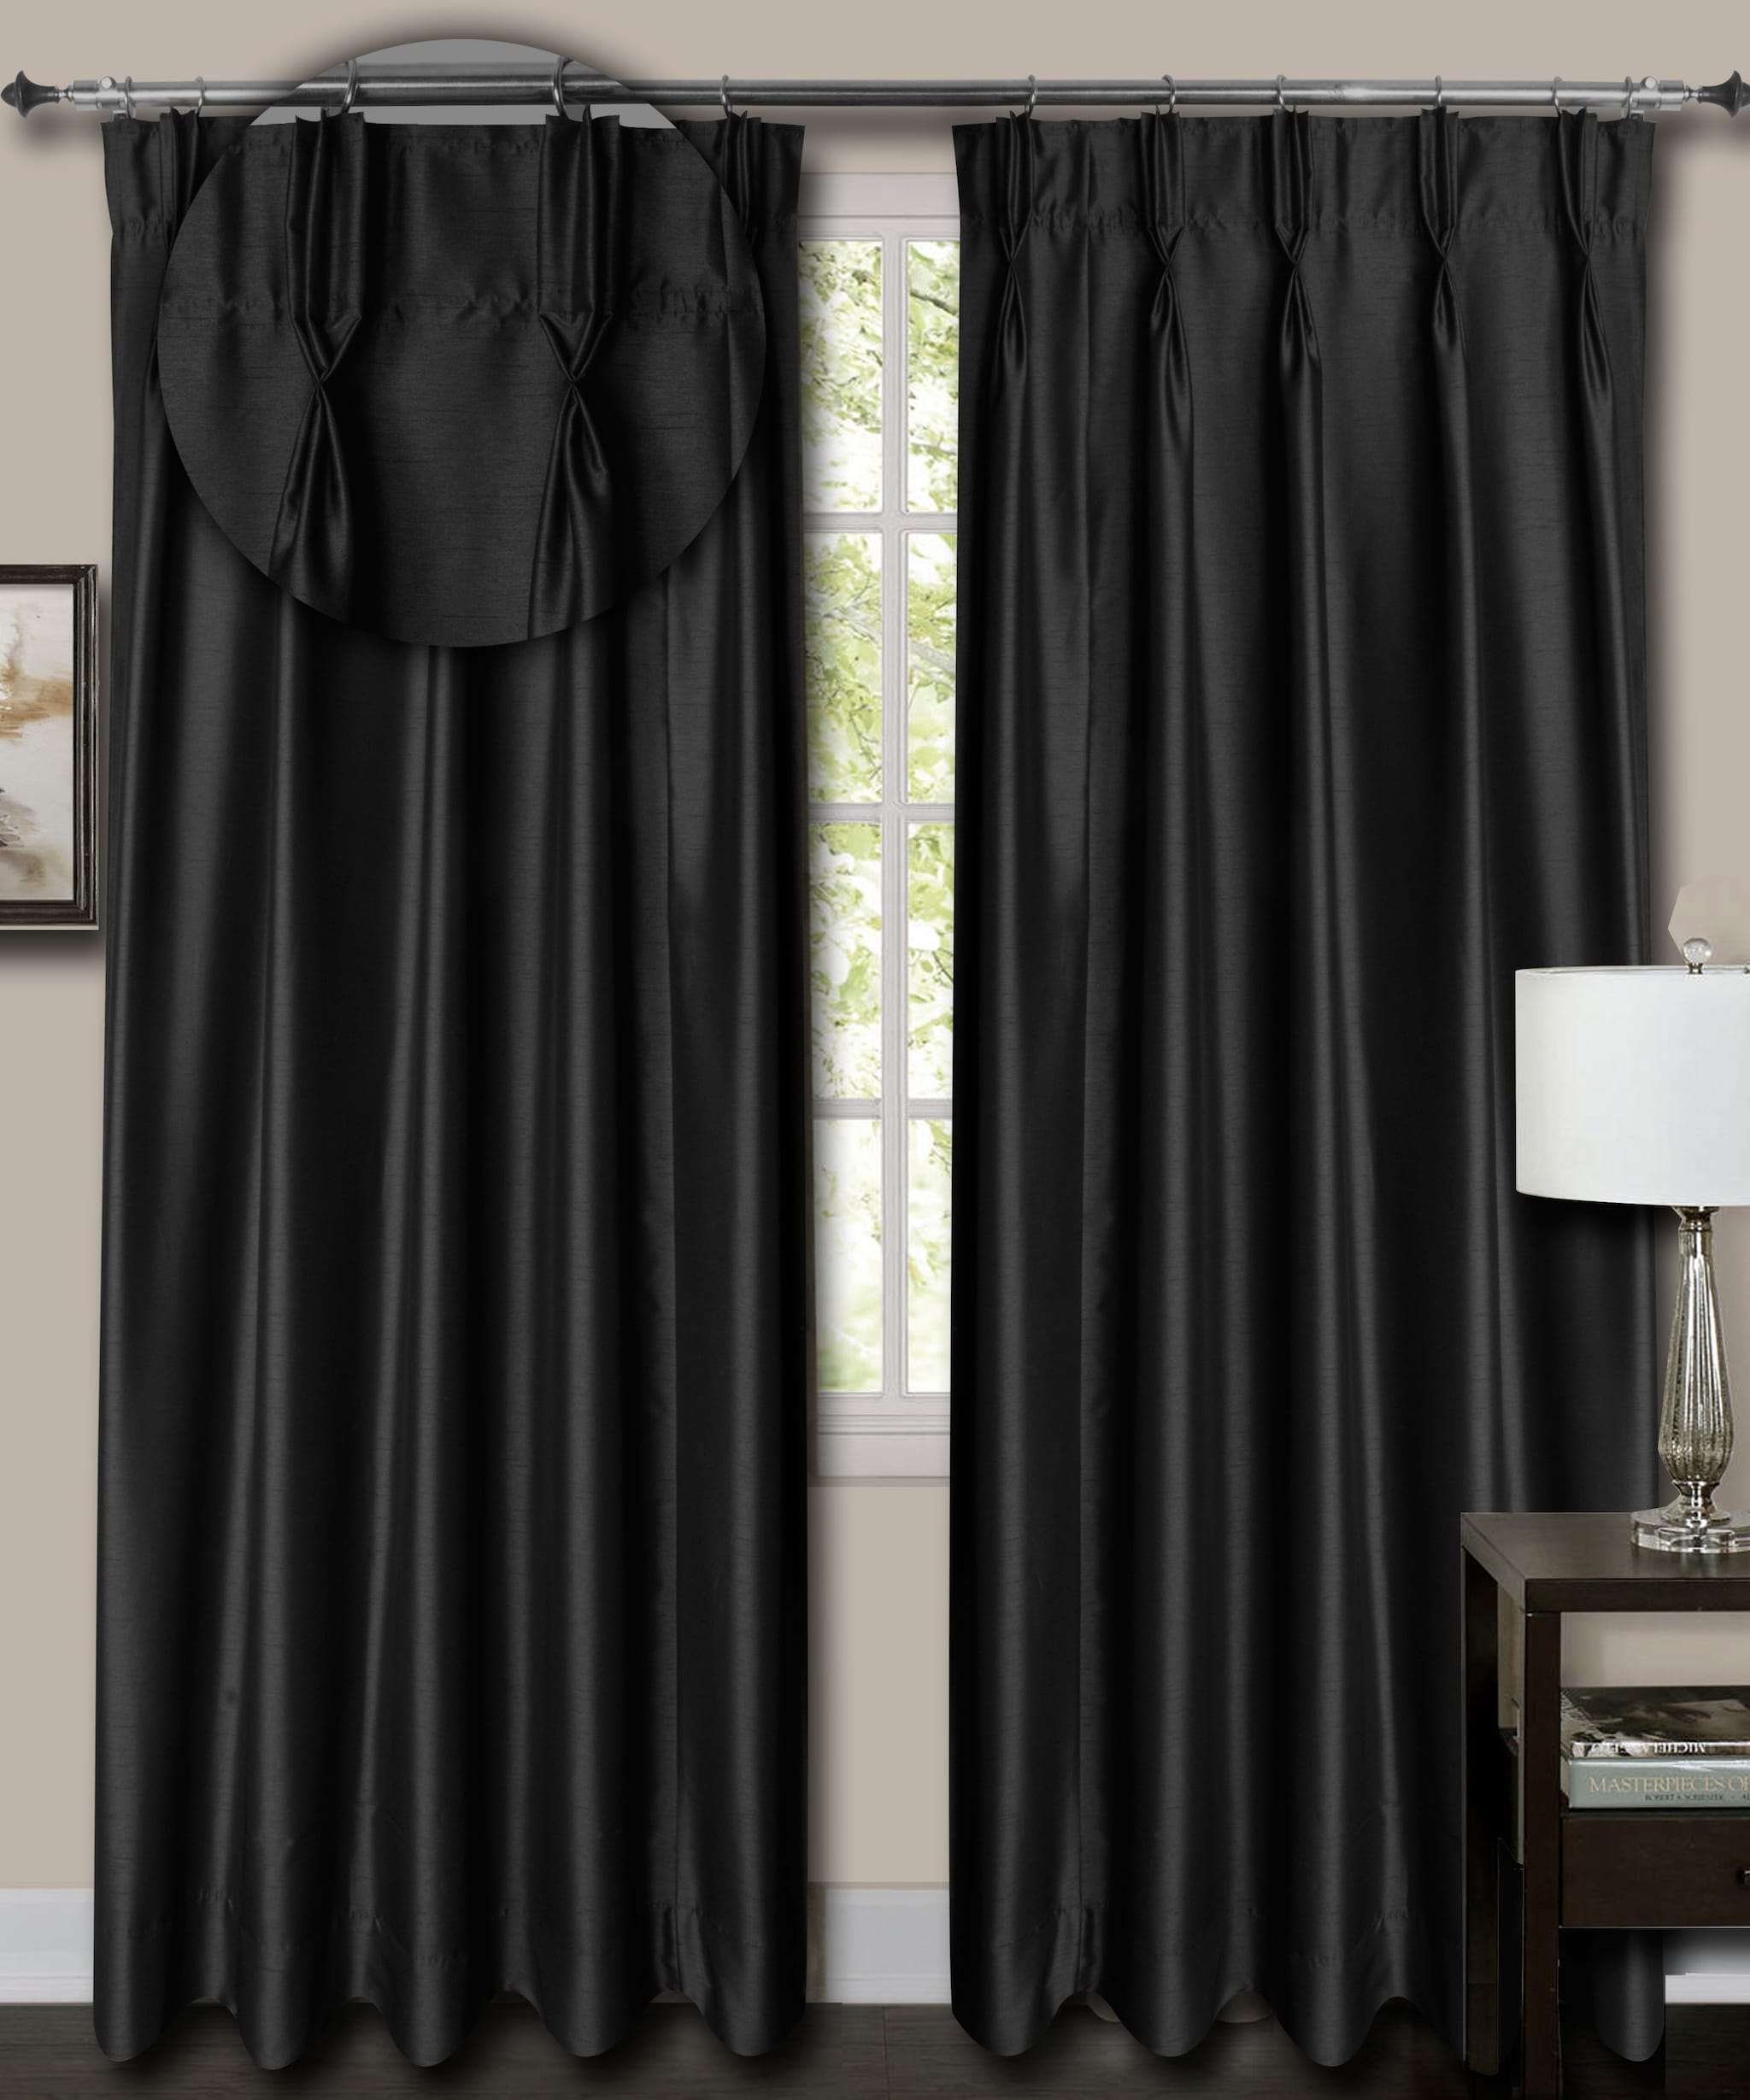 """French Pleat Top Black Faux Silk Dupioni Curtains. (24"""" Wide,4 Feet Long,Thick Lining)"""